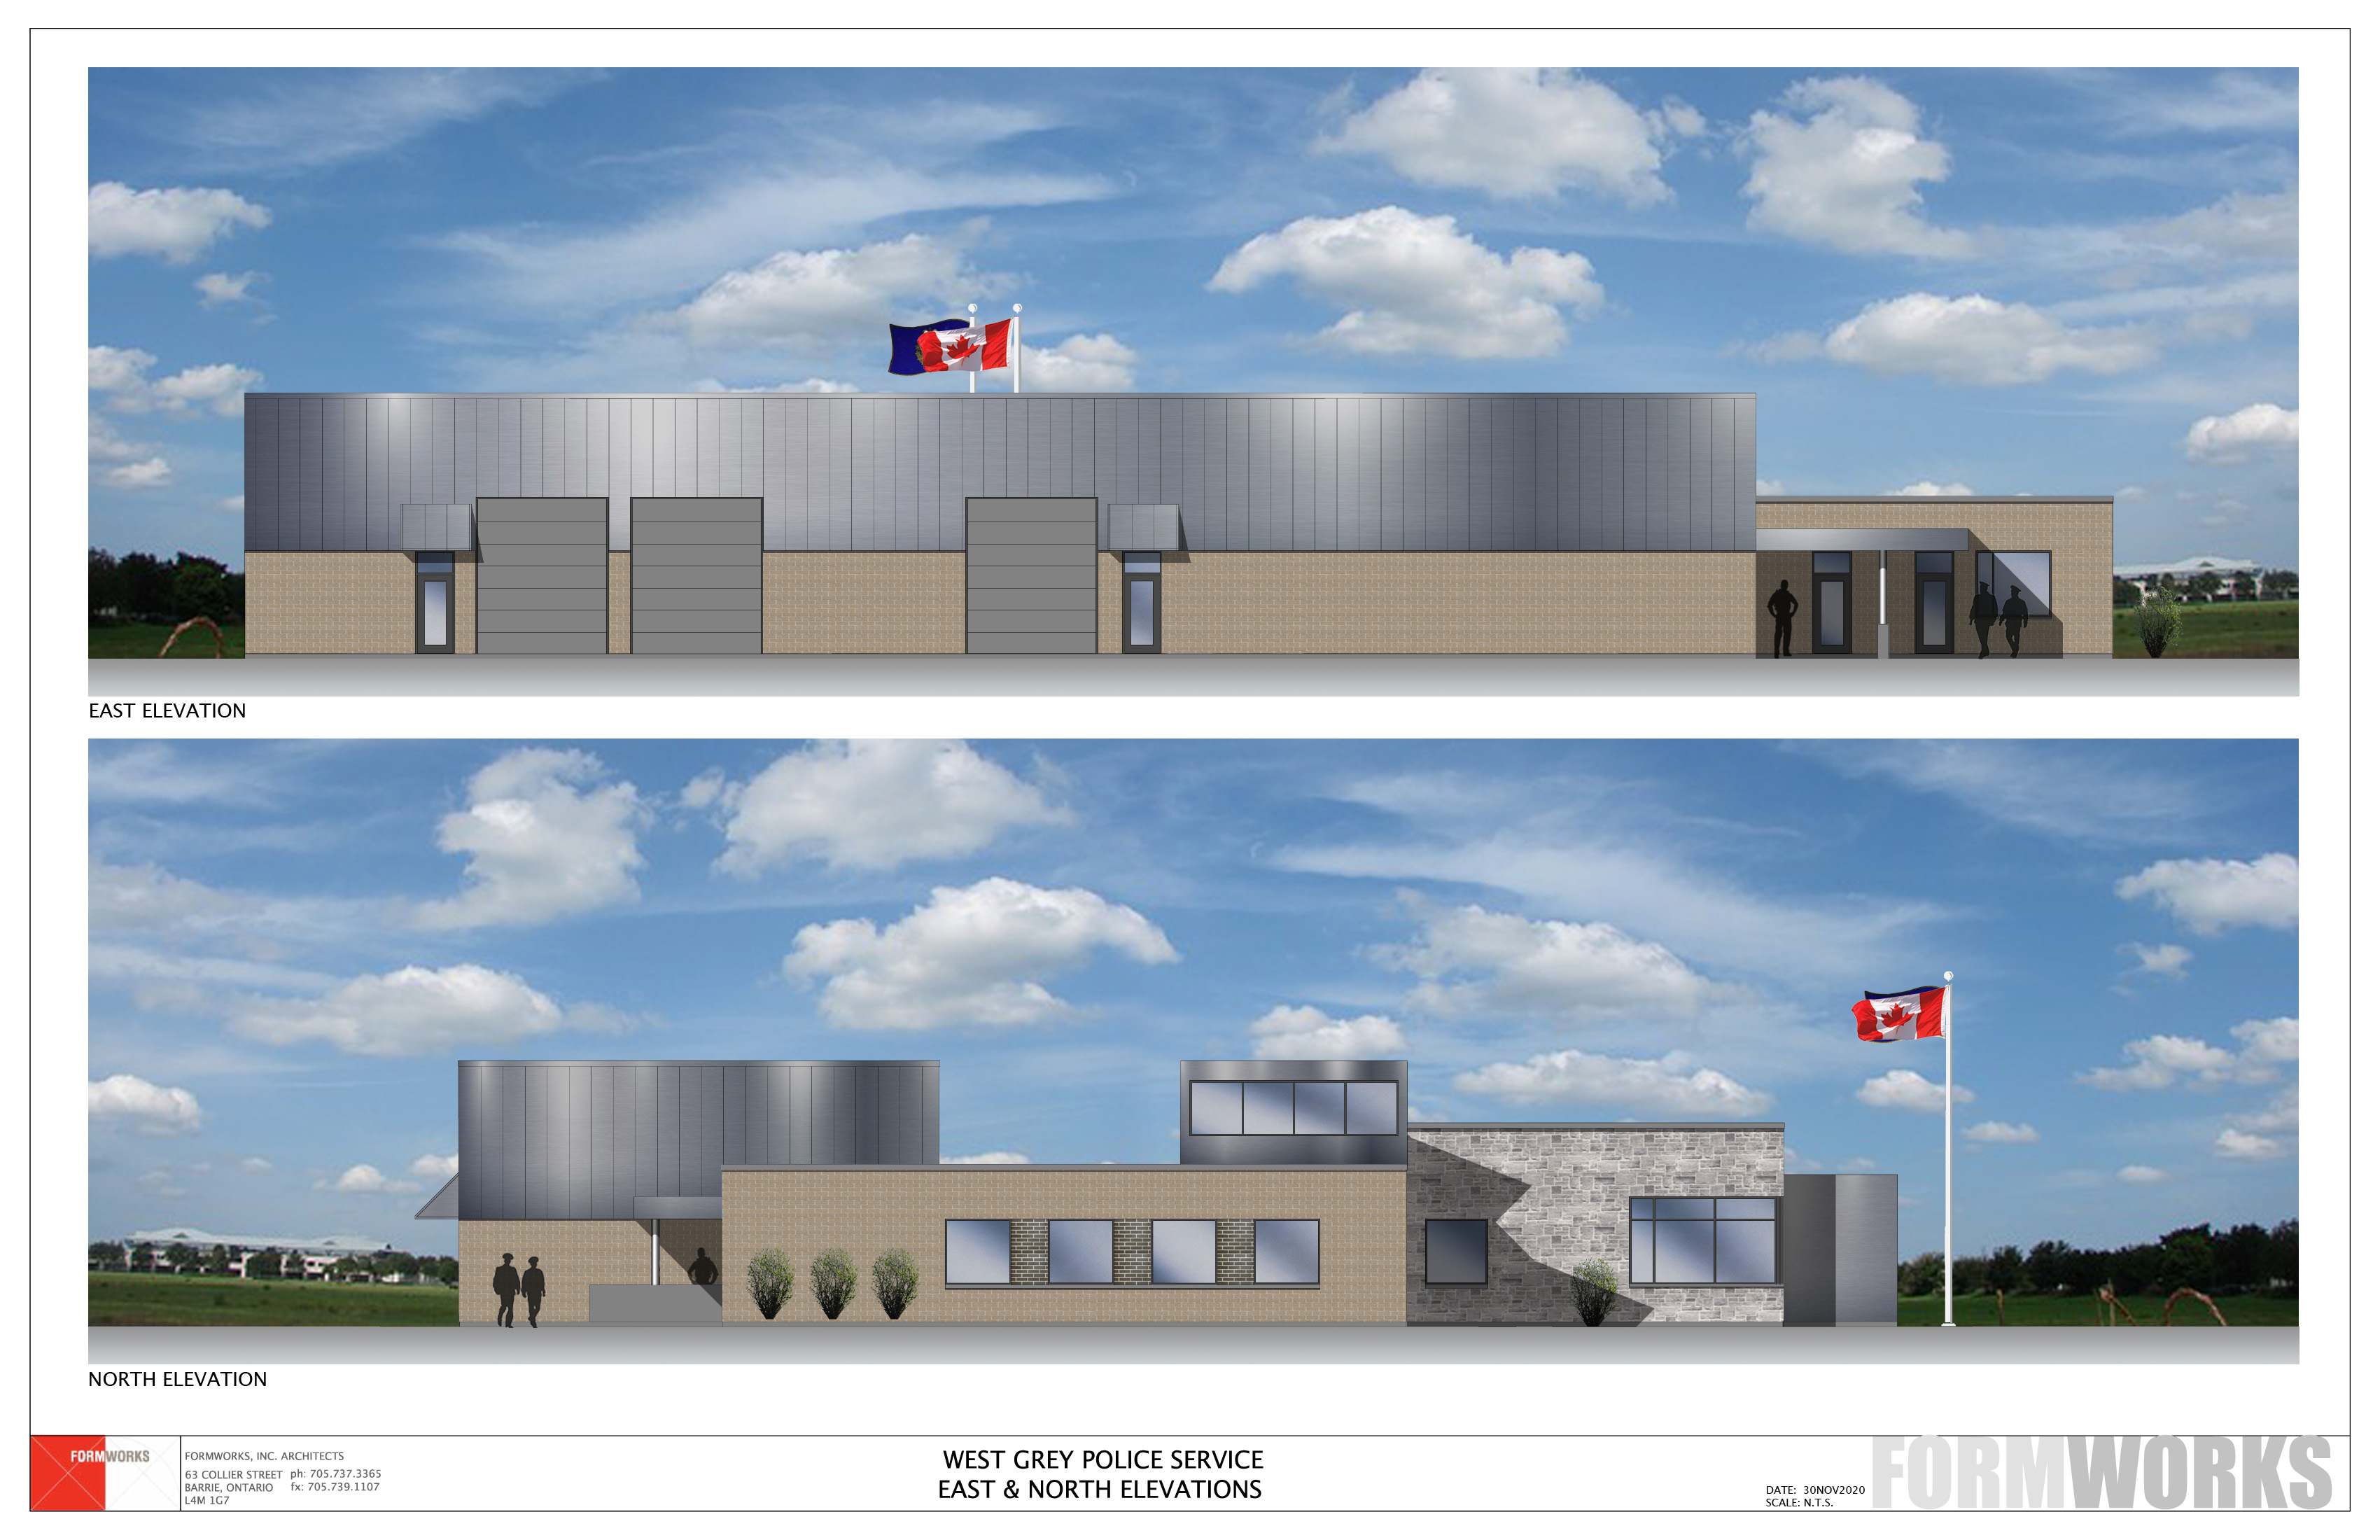 Architect rendering of new West Grey Police Services building